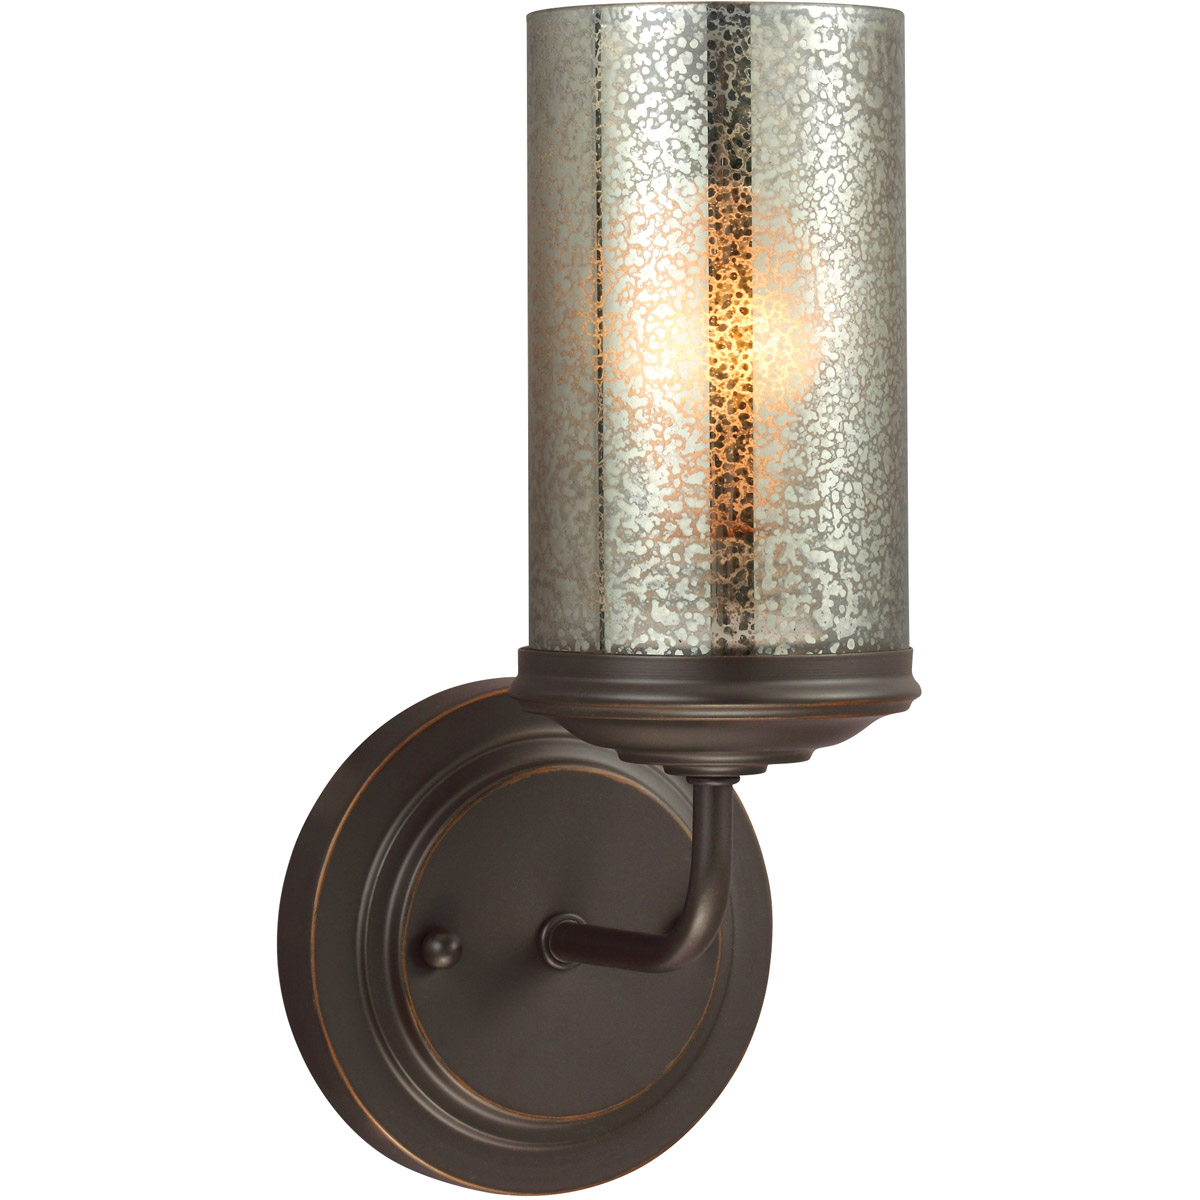 Sea Gull Sfera 1 Light Bath Sconce in Autumn Bronze 4110401-715